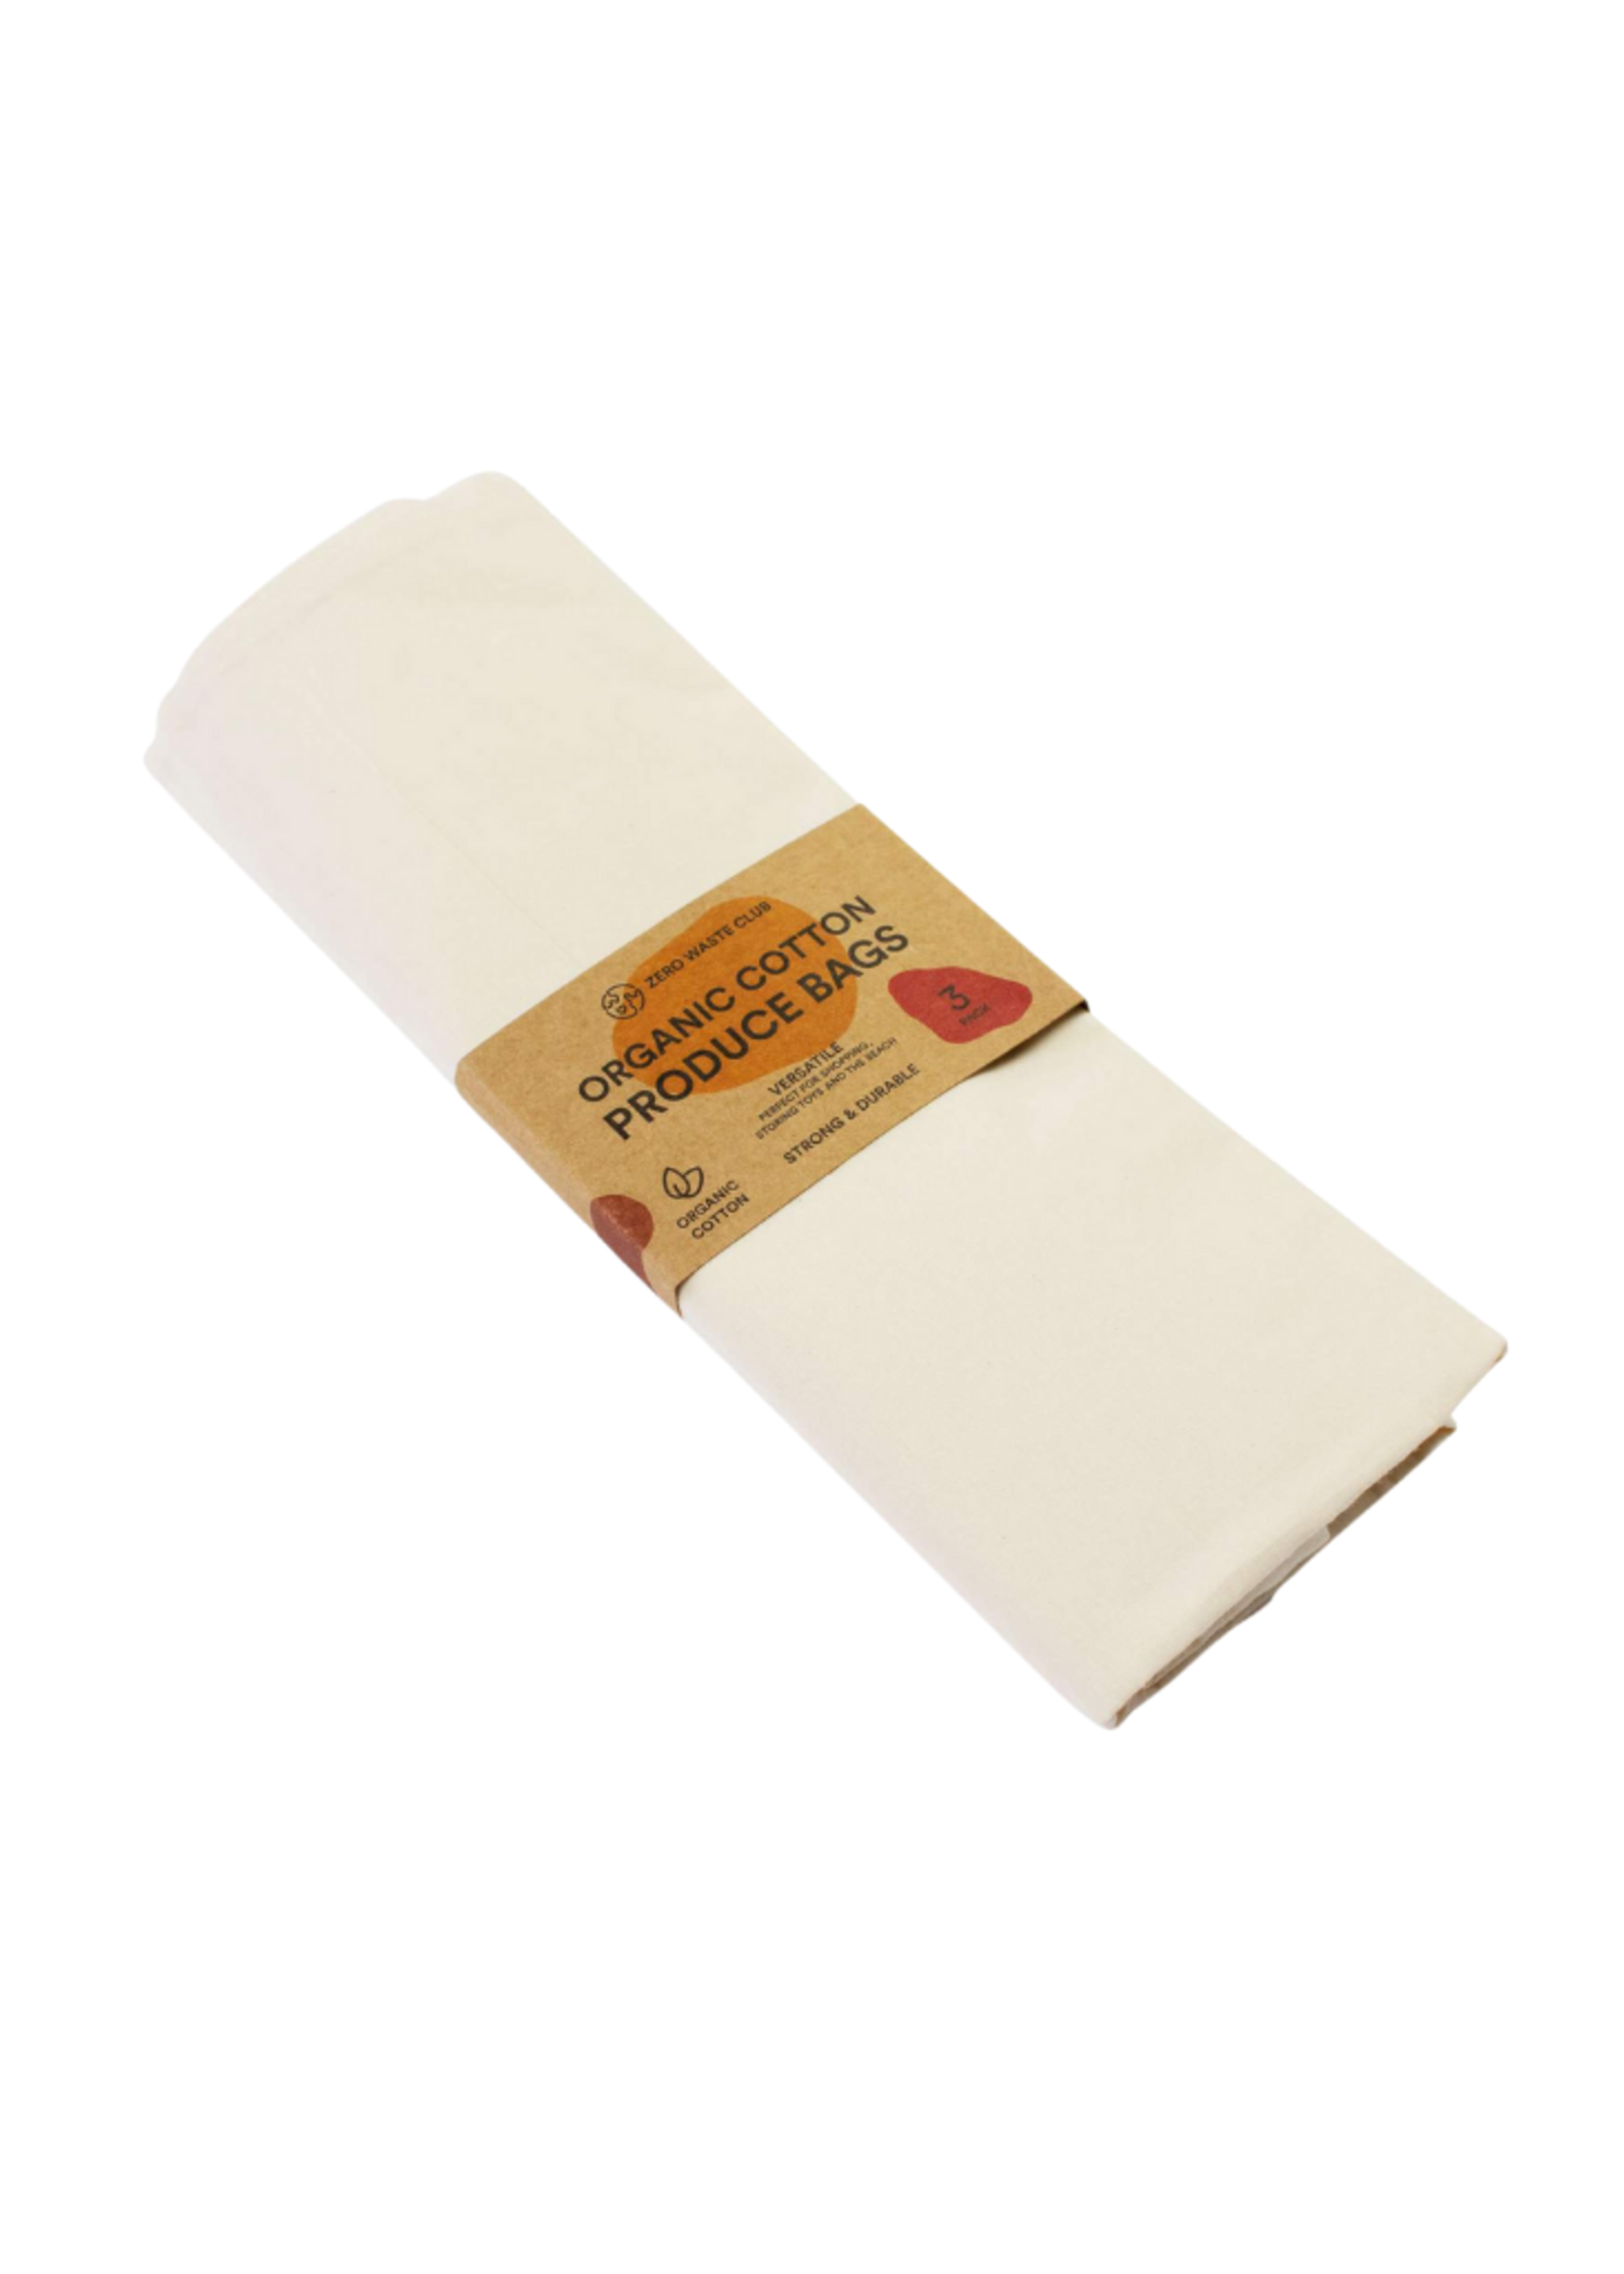 Zero Waste Club Organic Cotton Produce Bags - Pack of 3